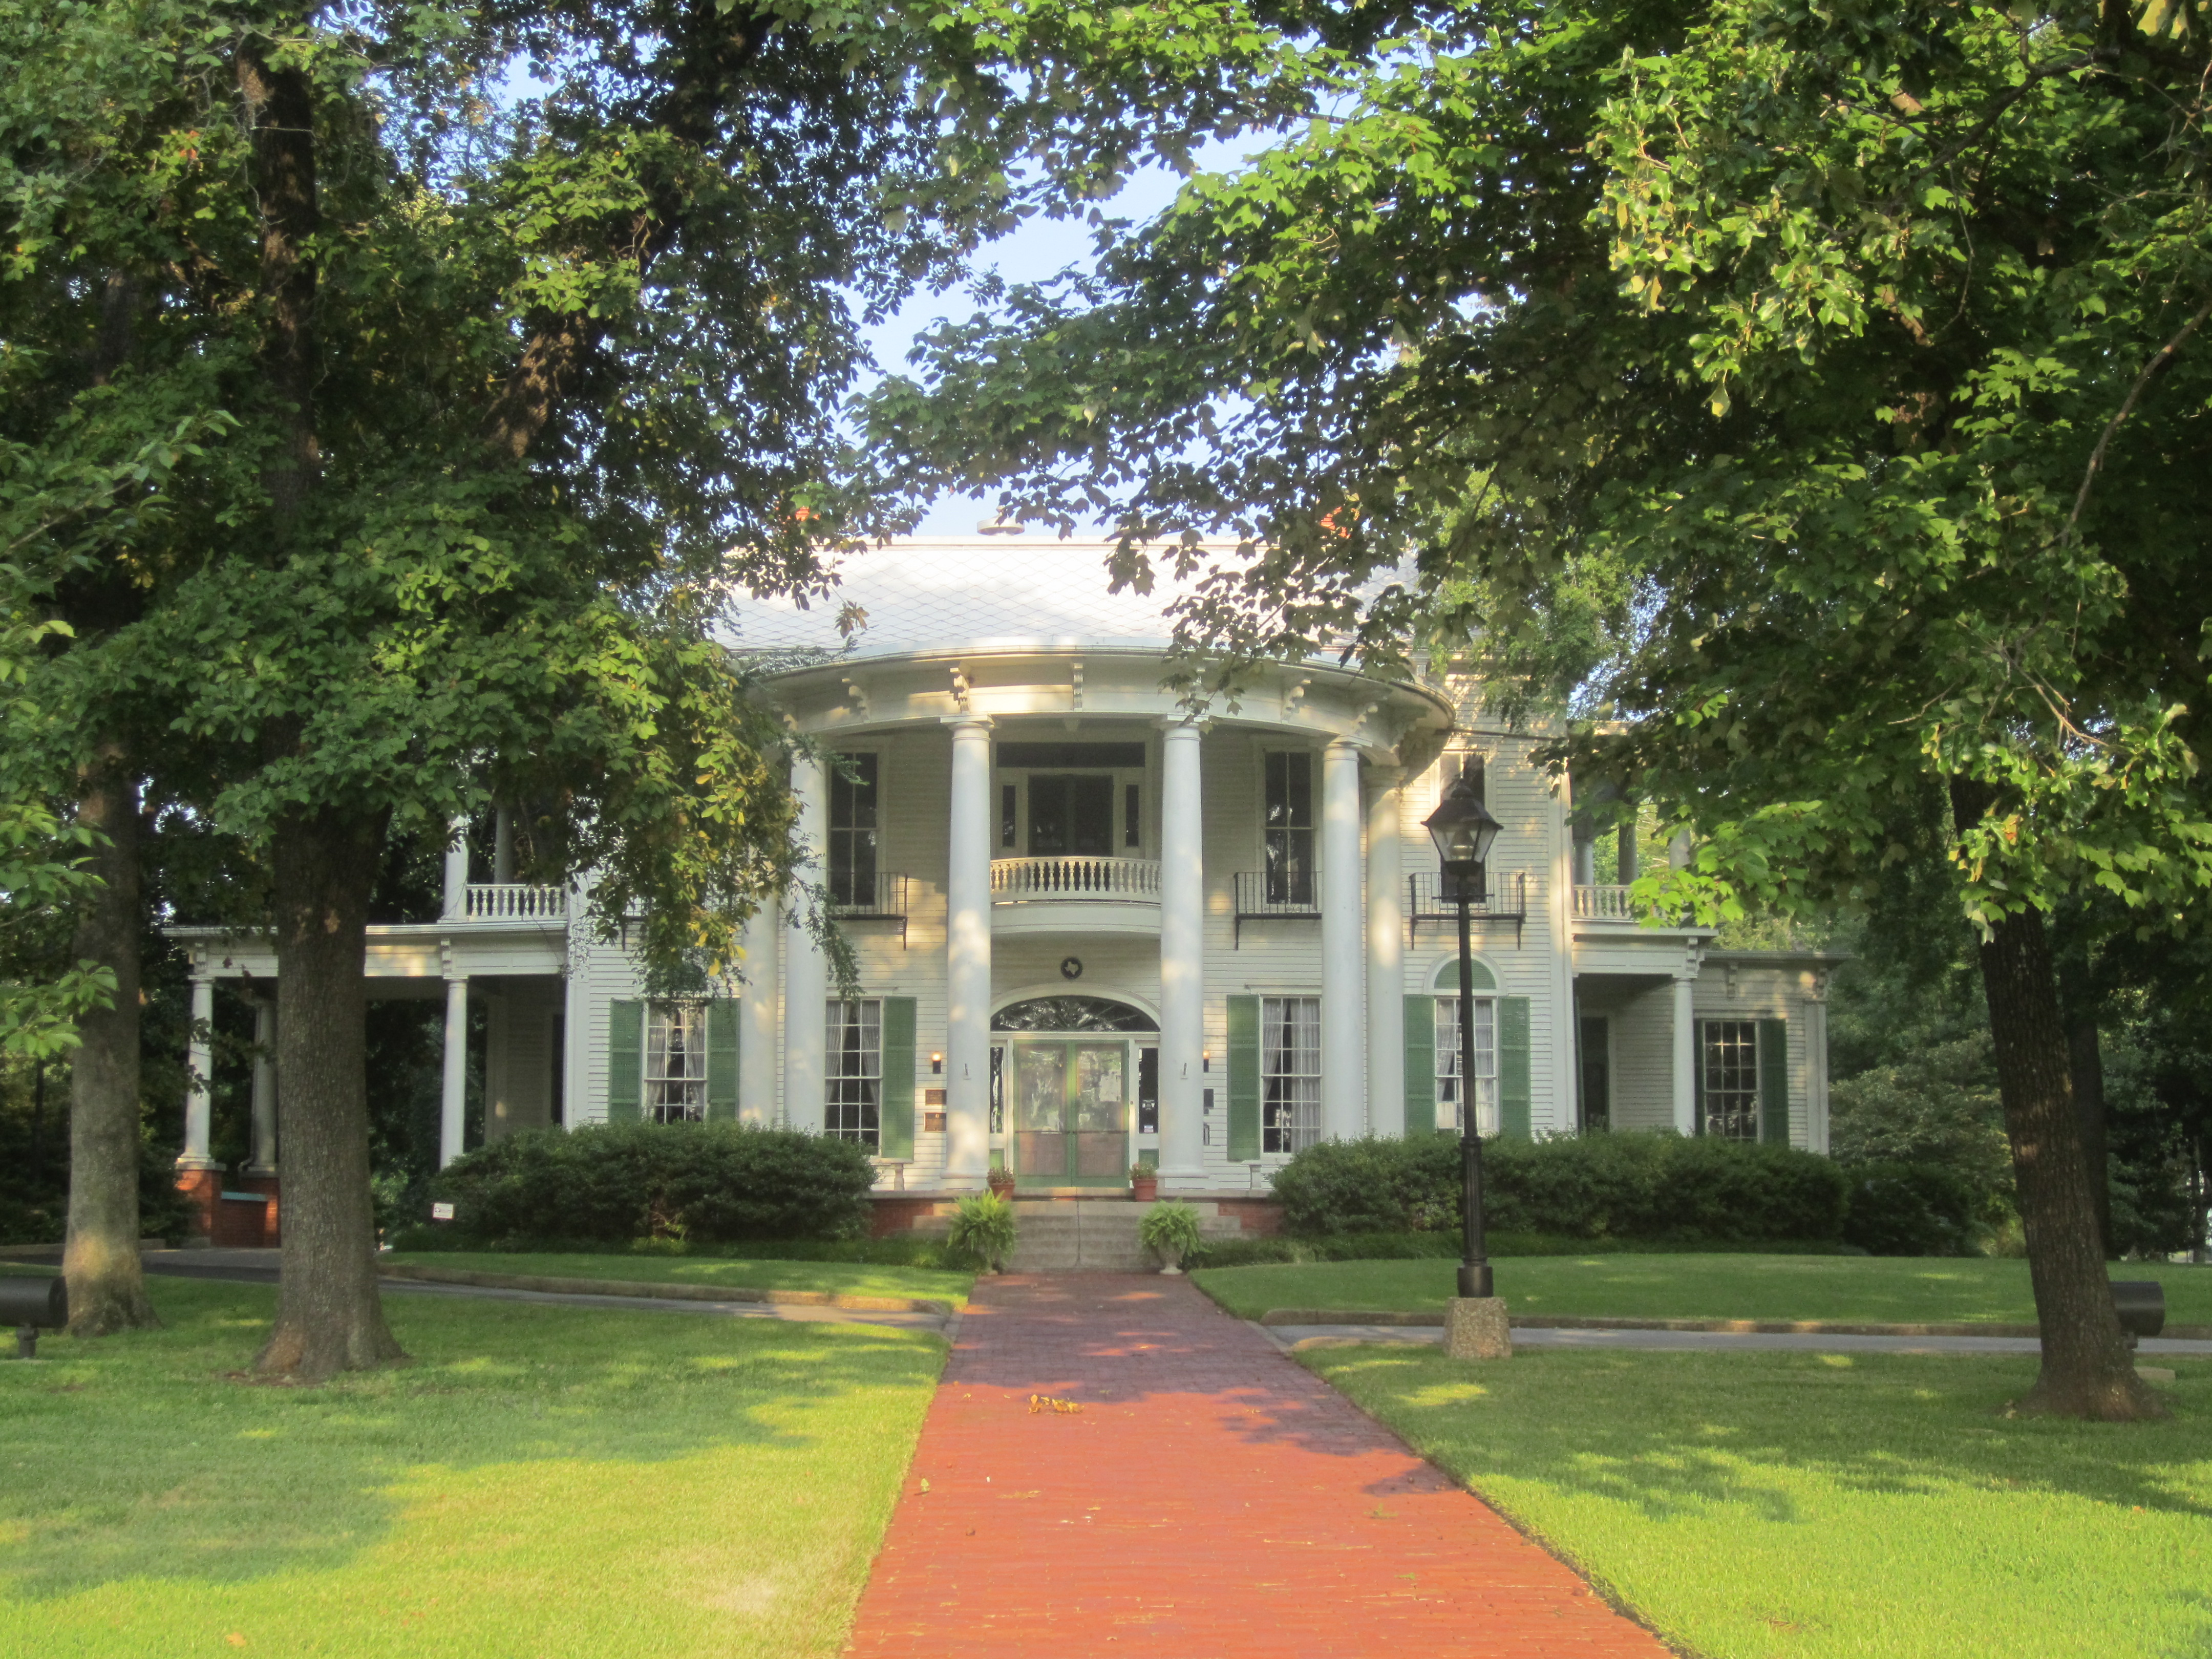 The Goodman-LeGrand House was built in 1859 is today a house museum.